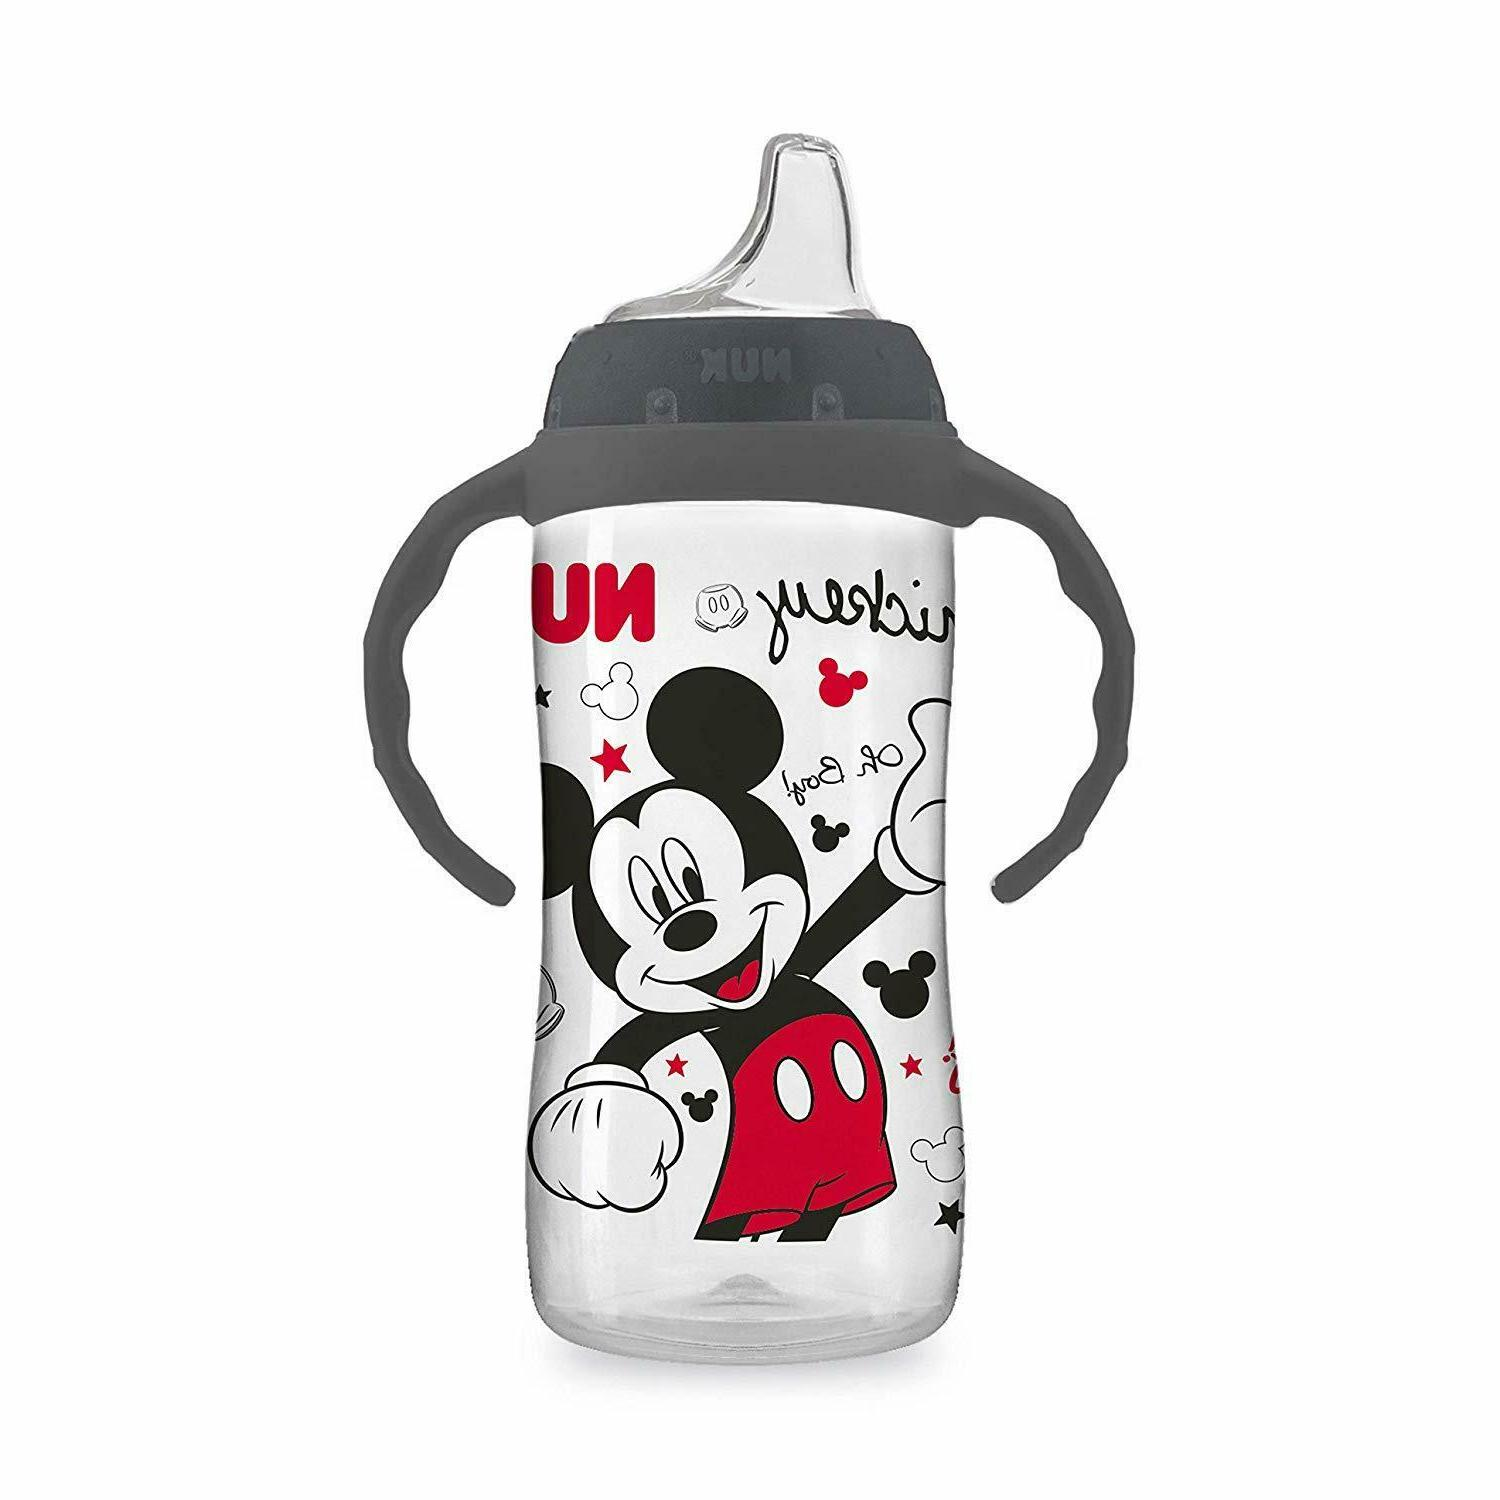 Disney Large Sippy Cup Mickey oz. Spill Proof Removable Handles